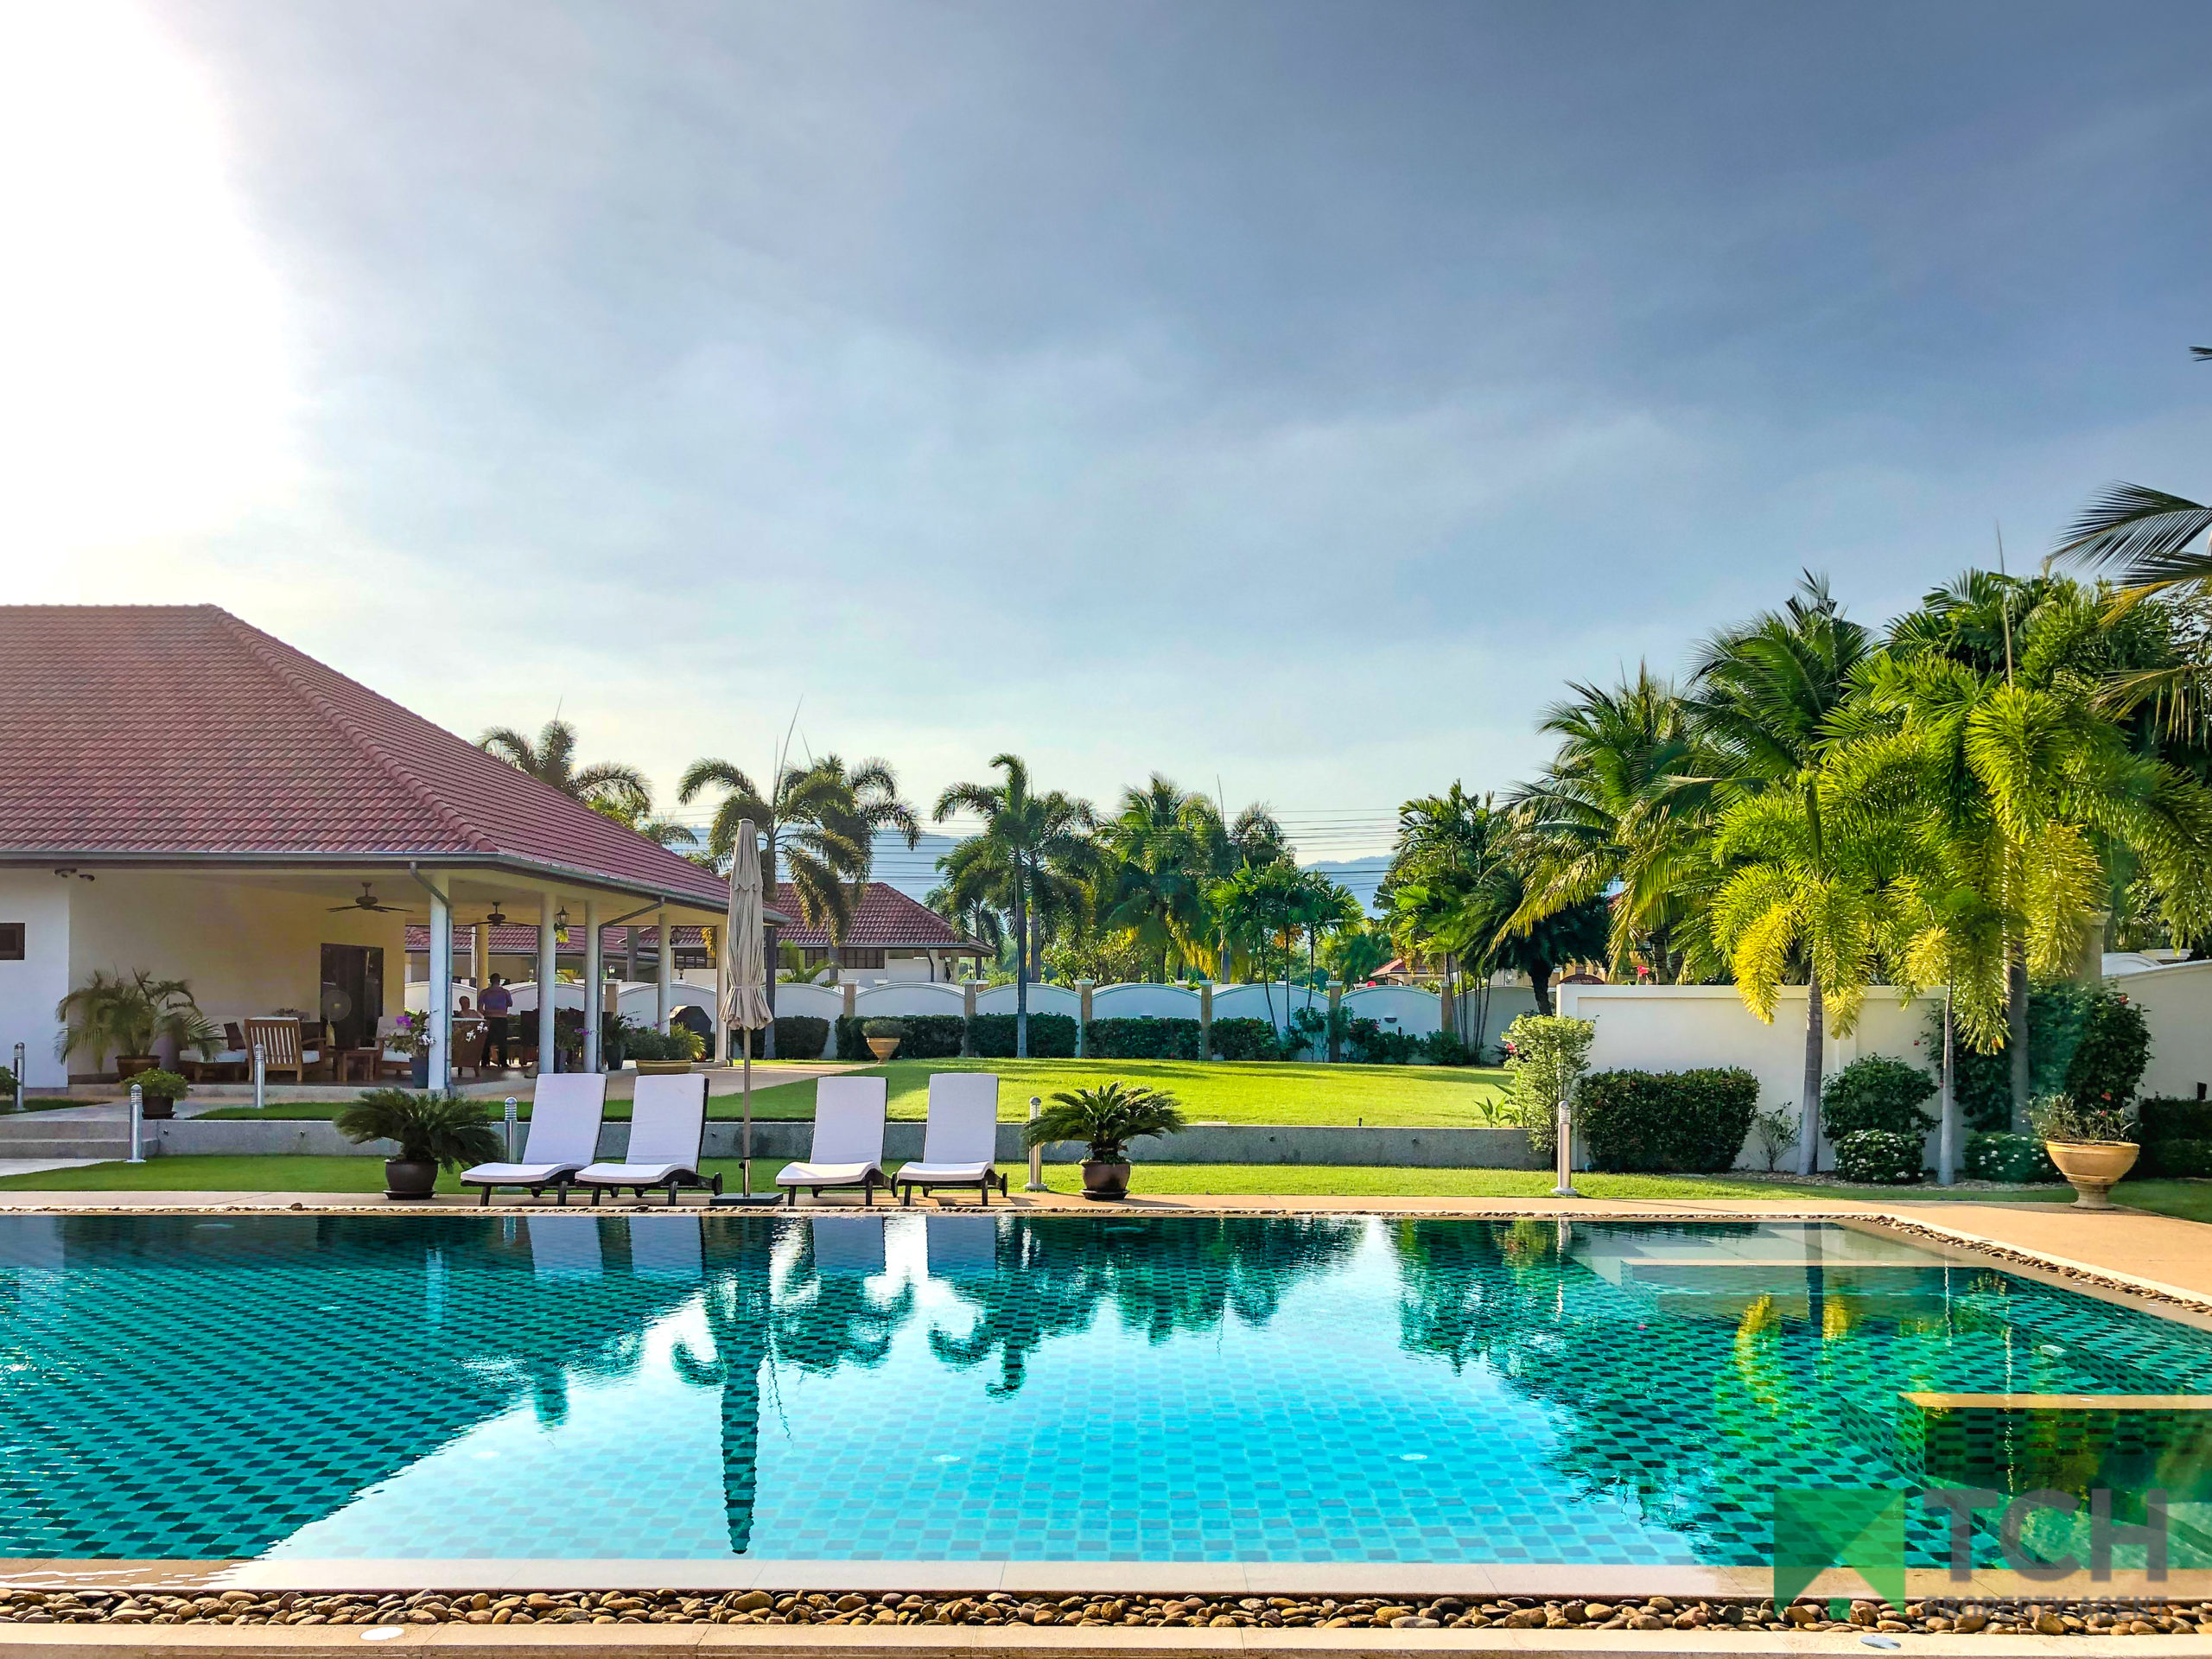 Luxurious, 6 Bedroom, High-End Pool Villa on a Plot of 2,504 sqm